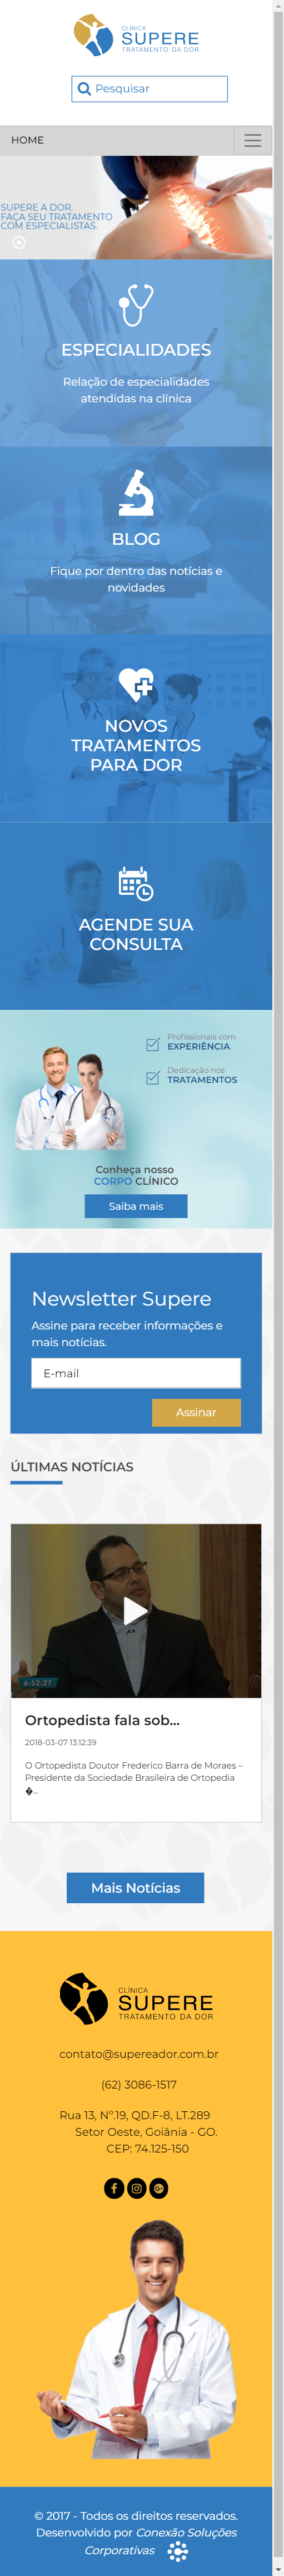 Supere WebSite Mobile